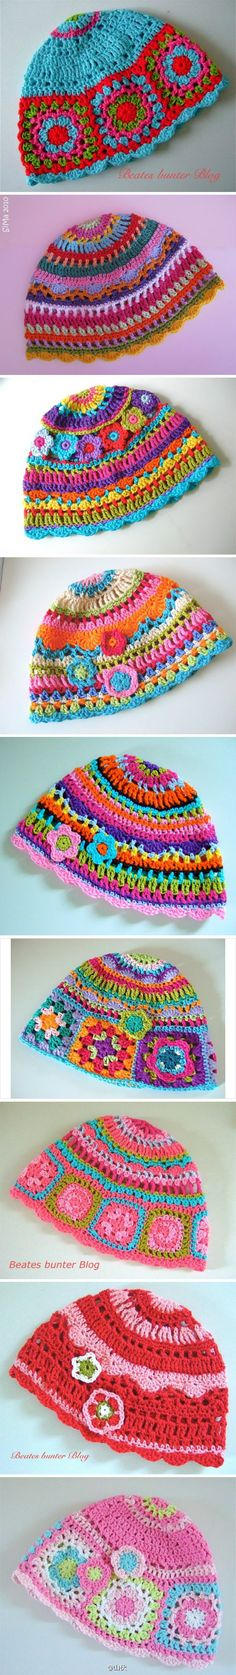 pretty crochet caps - What a cute way to use up all those little scraps of yarn! Bonnet Crochet, Crochet Beanie Hat, Knit Or Crochet, Crochet Granny, Crochet For Kids, Crochet Crafts, Knitted Hats, Hand Crochet, Knitting Projects